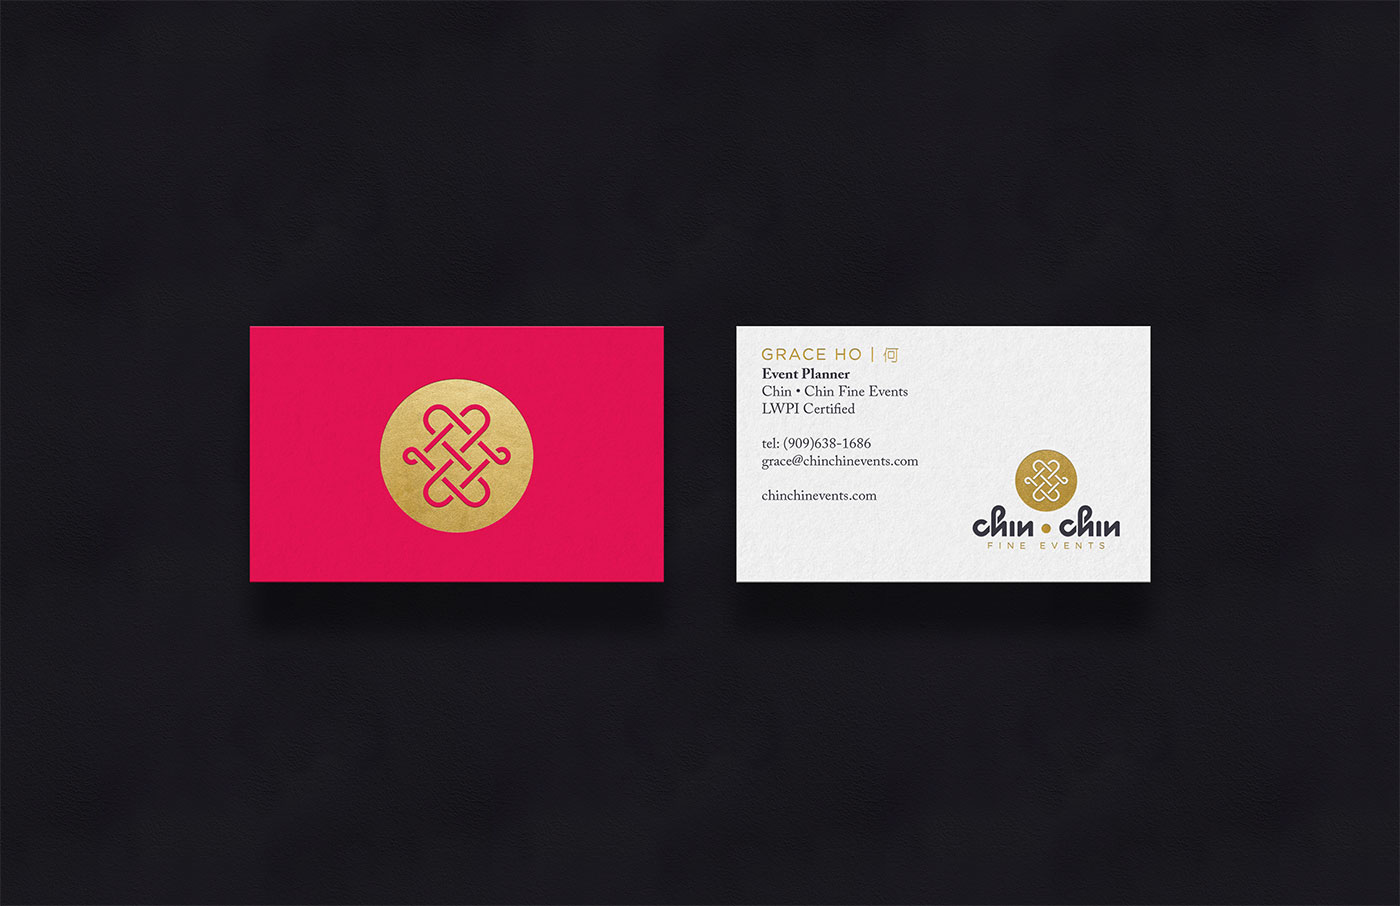 Outfit Branding & Design Chin Chin Fine Events Business Cards